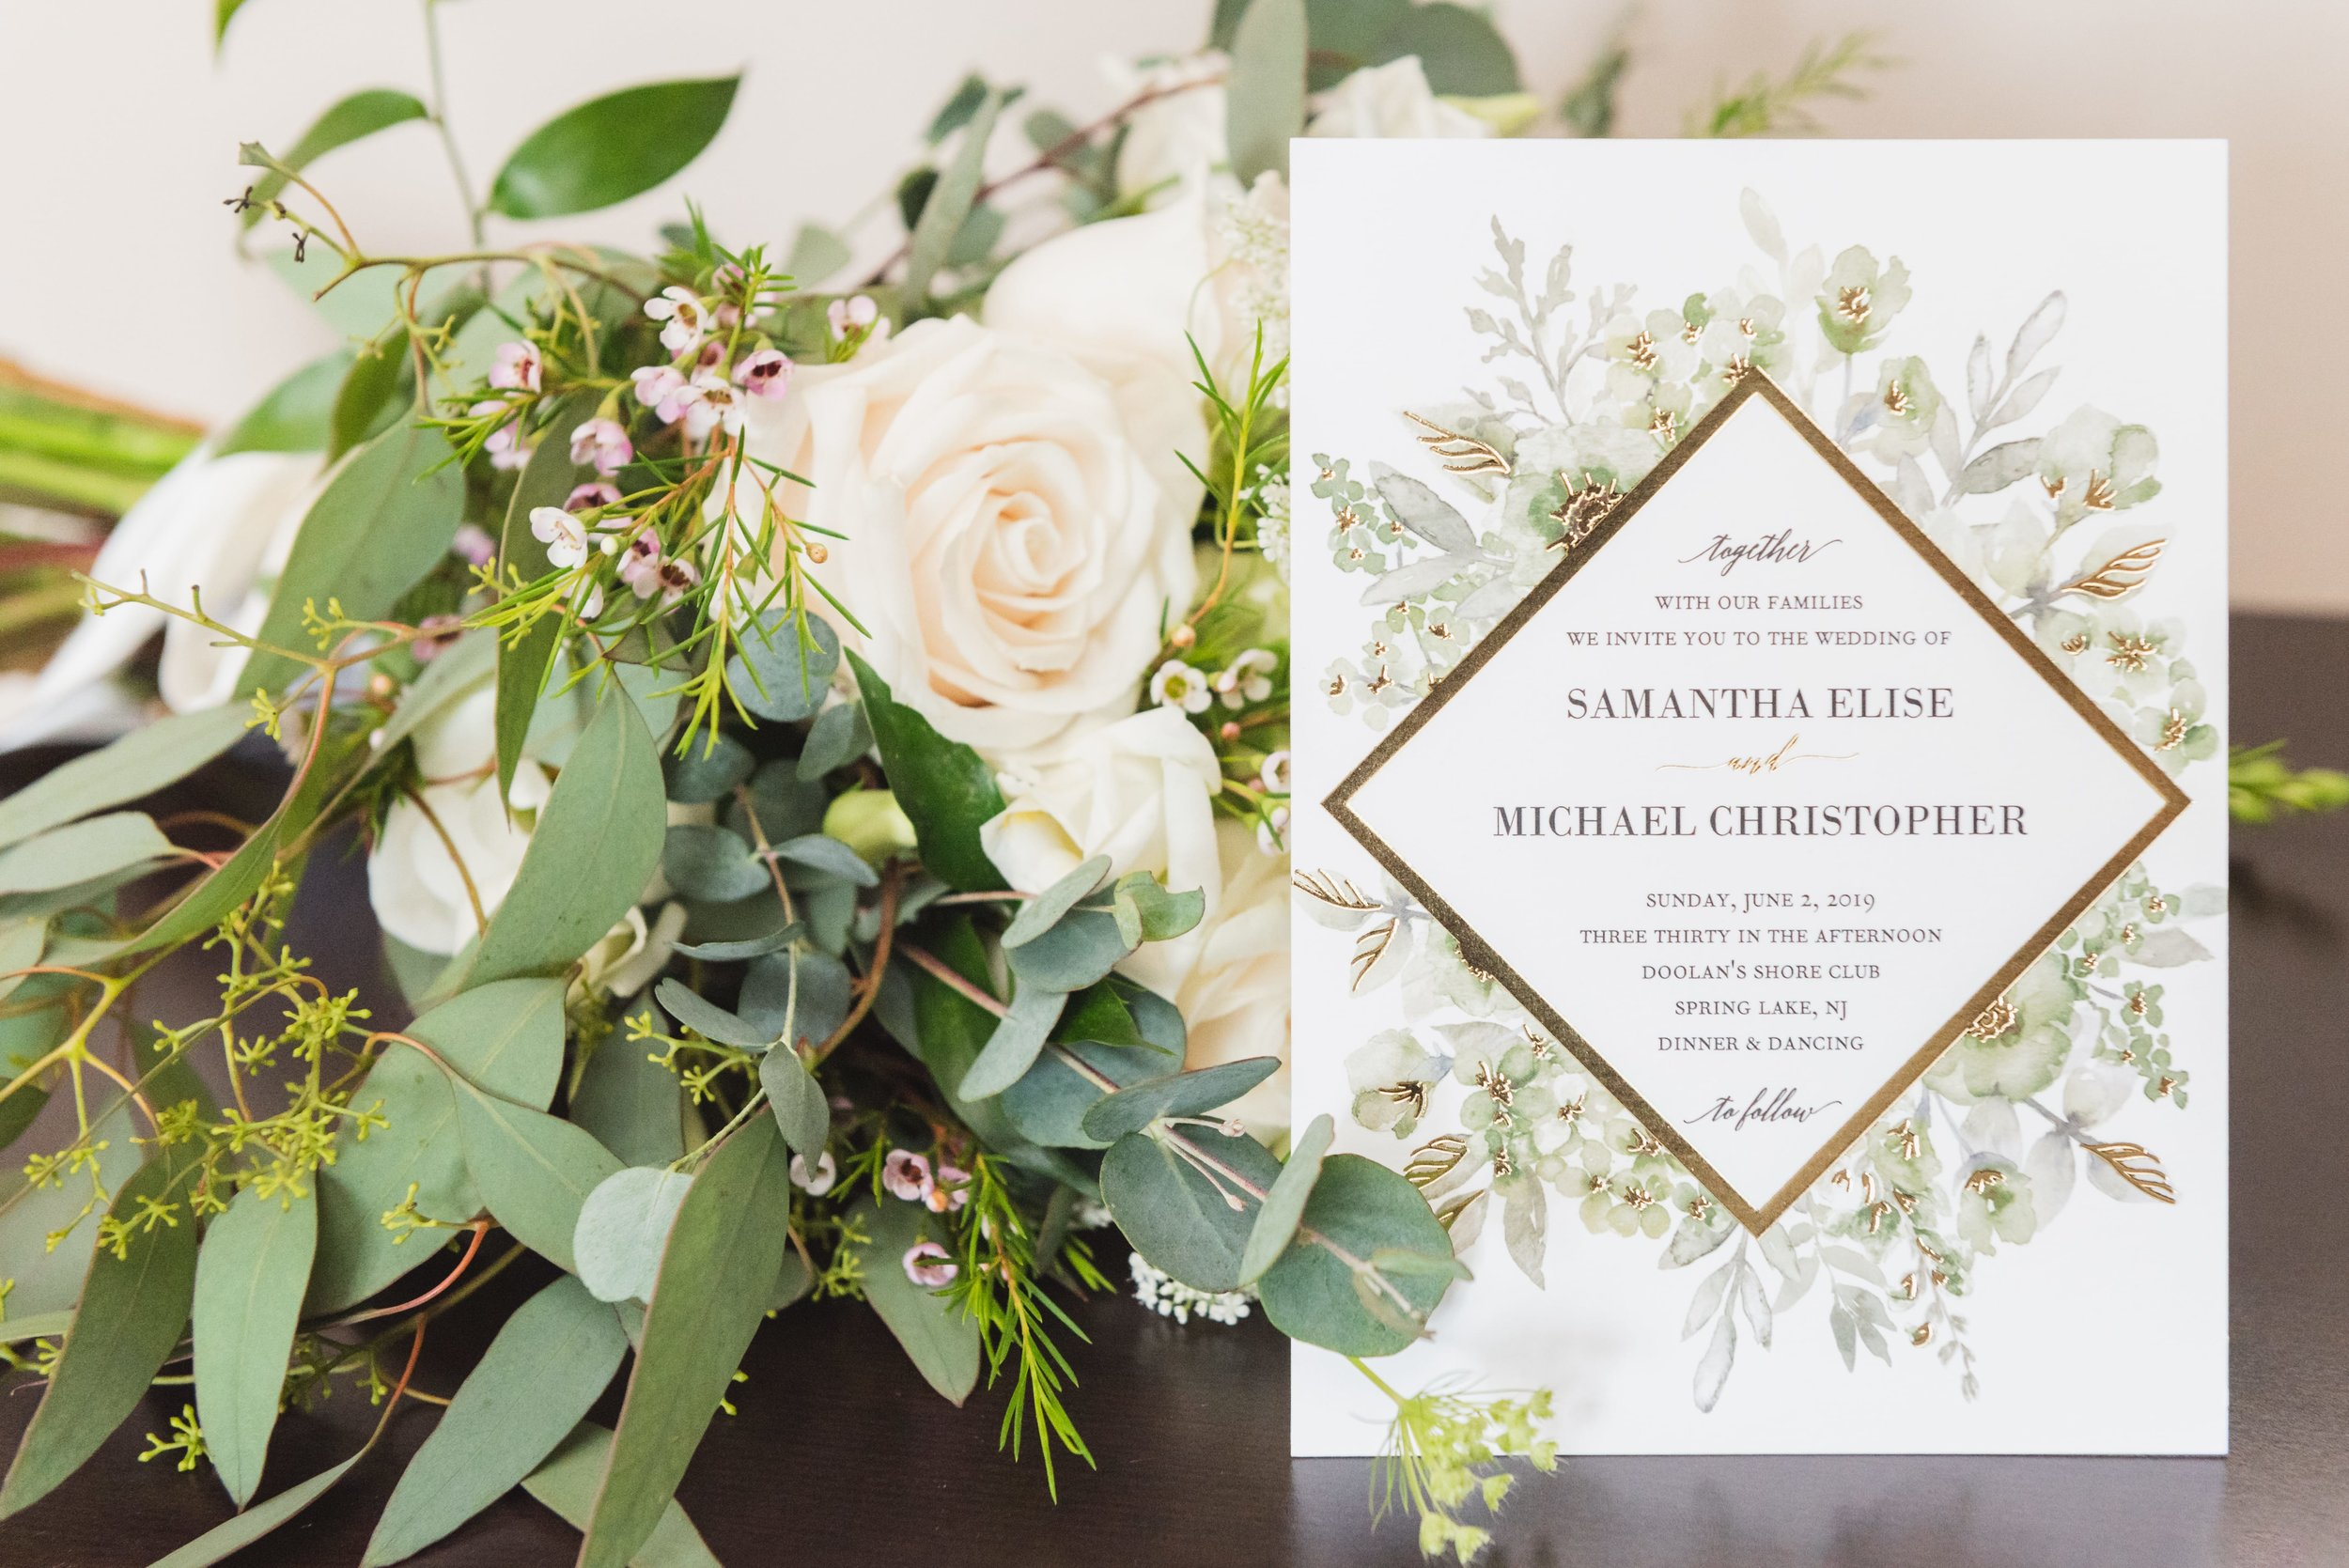 A wedding invitation decorated with lush greenery and white roses next to an identical centerpiece.